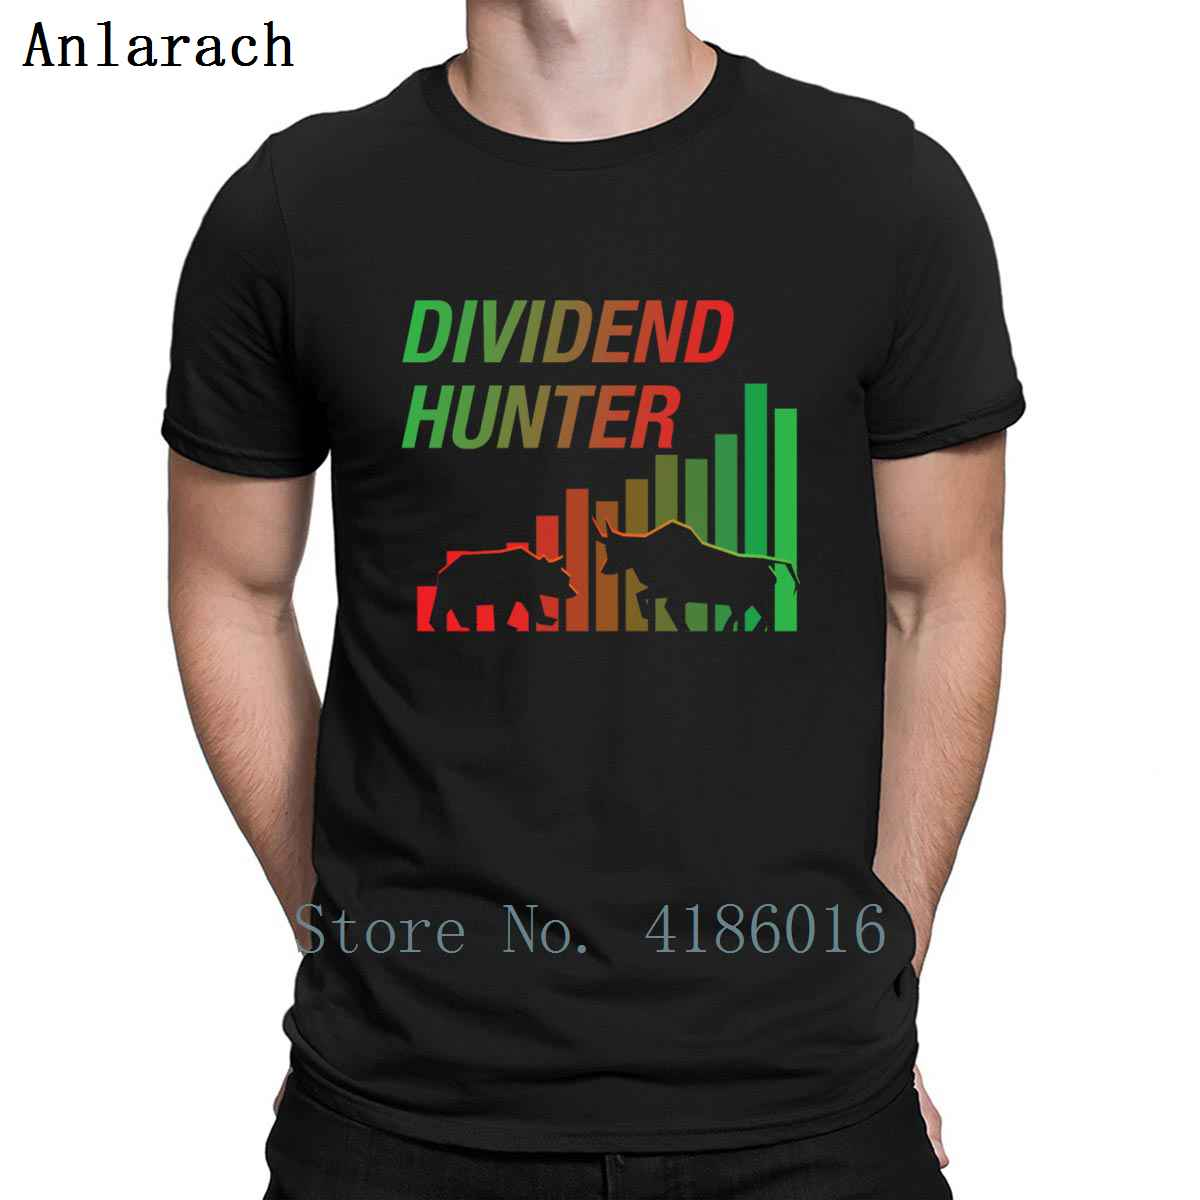 Dividend Hunter Money Stocks Investors Gift T Shirt Vintage Short Sleeve Spring Gift Comical Create O-Neck Outfit Shirt image